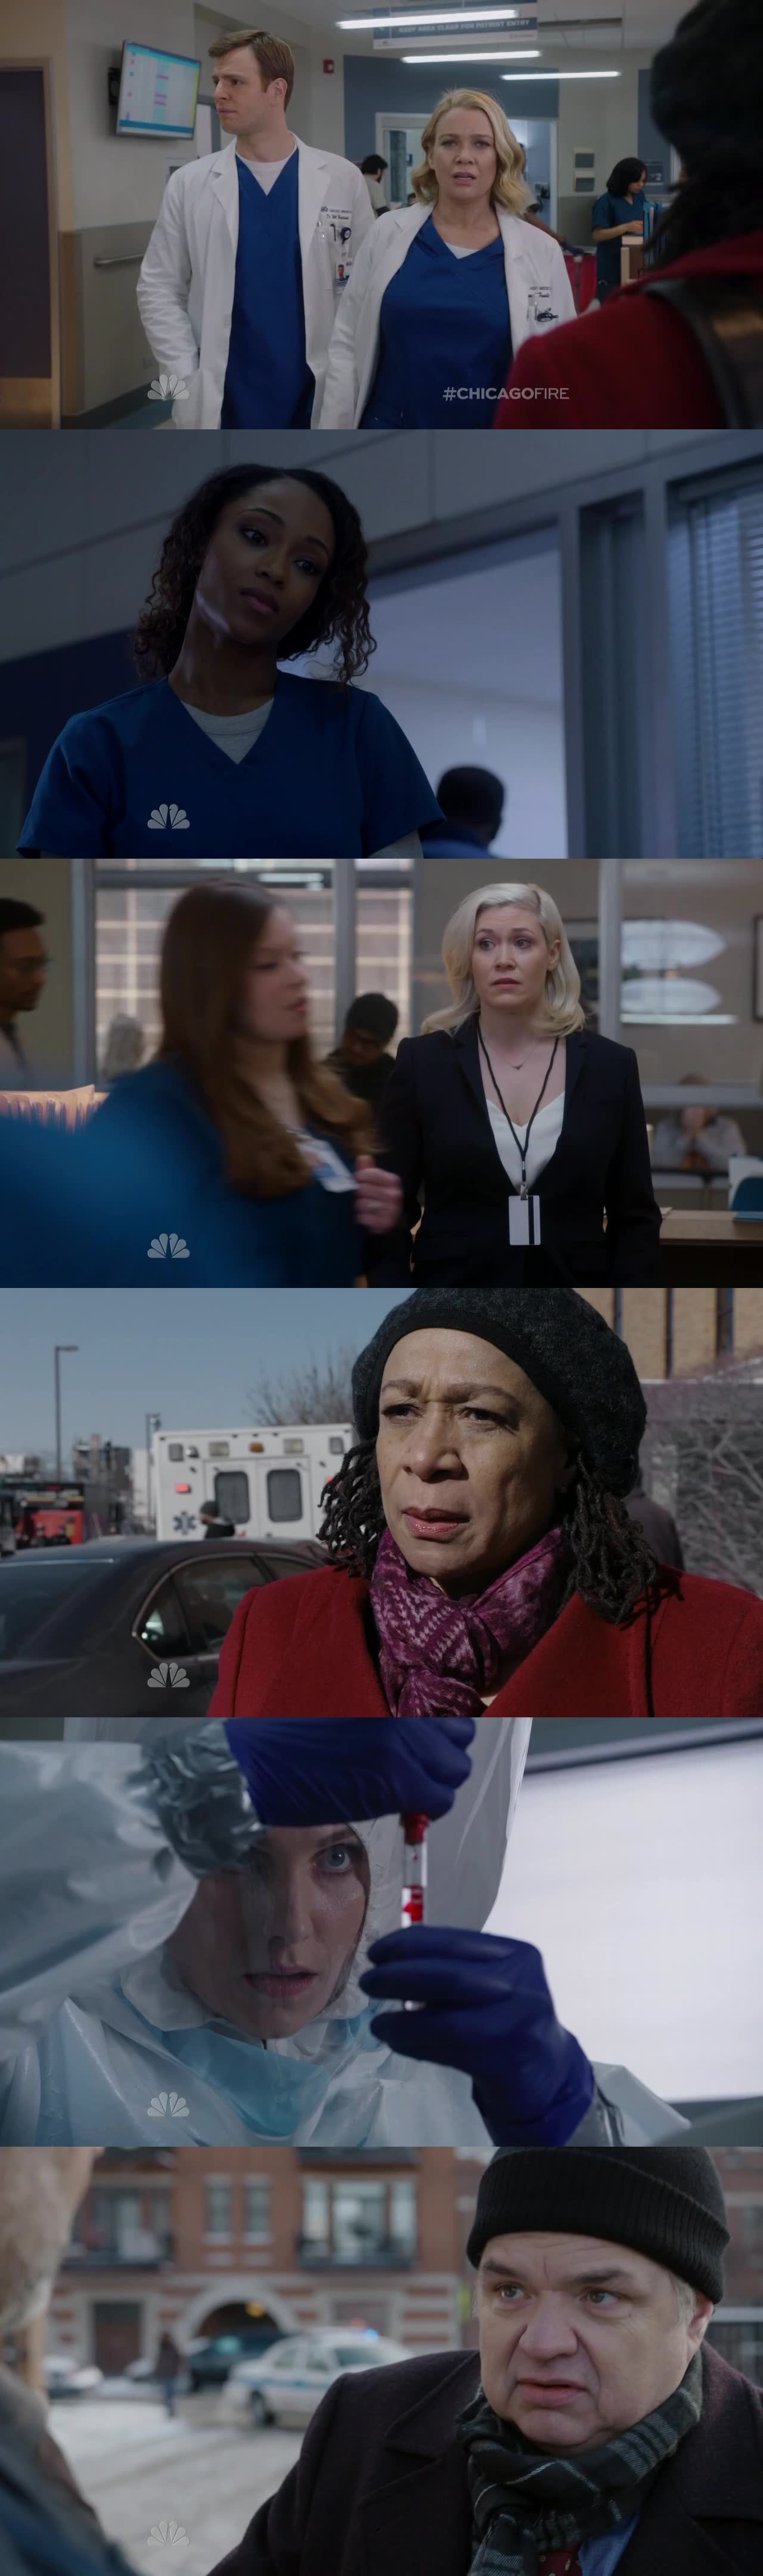 Welcome ChicagoMed!!  5 ladies for 2 men: that's a really GOOD start. Actually, they passed the test. That was an incredible episode. Plus Anna saved Severide so they are good. Boden's speech at the end was just the perfect talk to introduce them. Can't wait for more Chicago nights!!